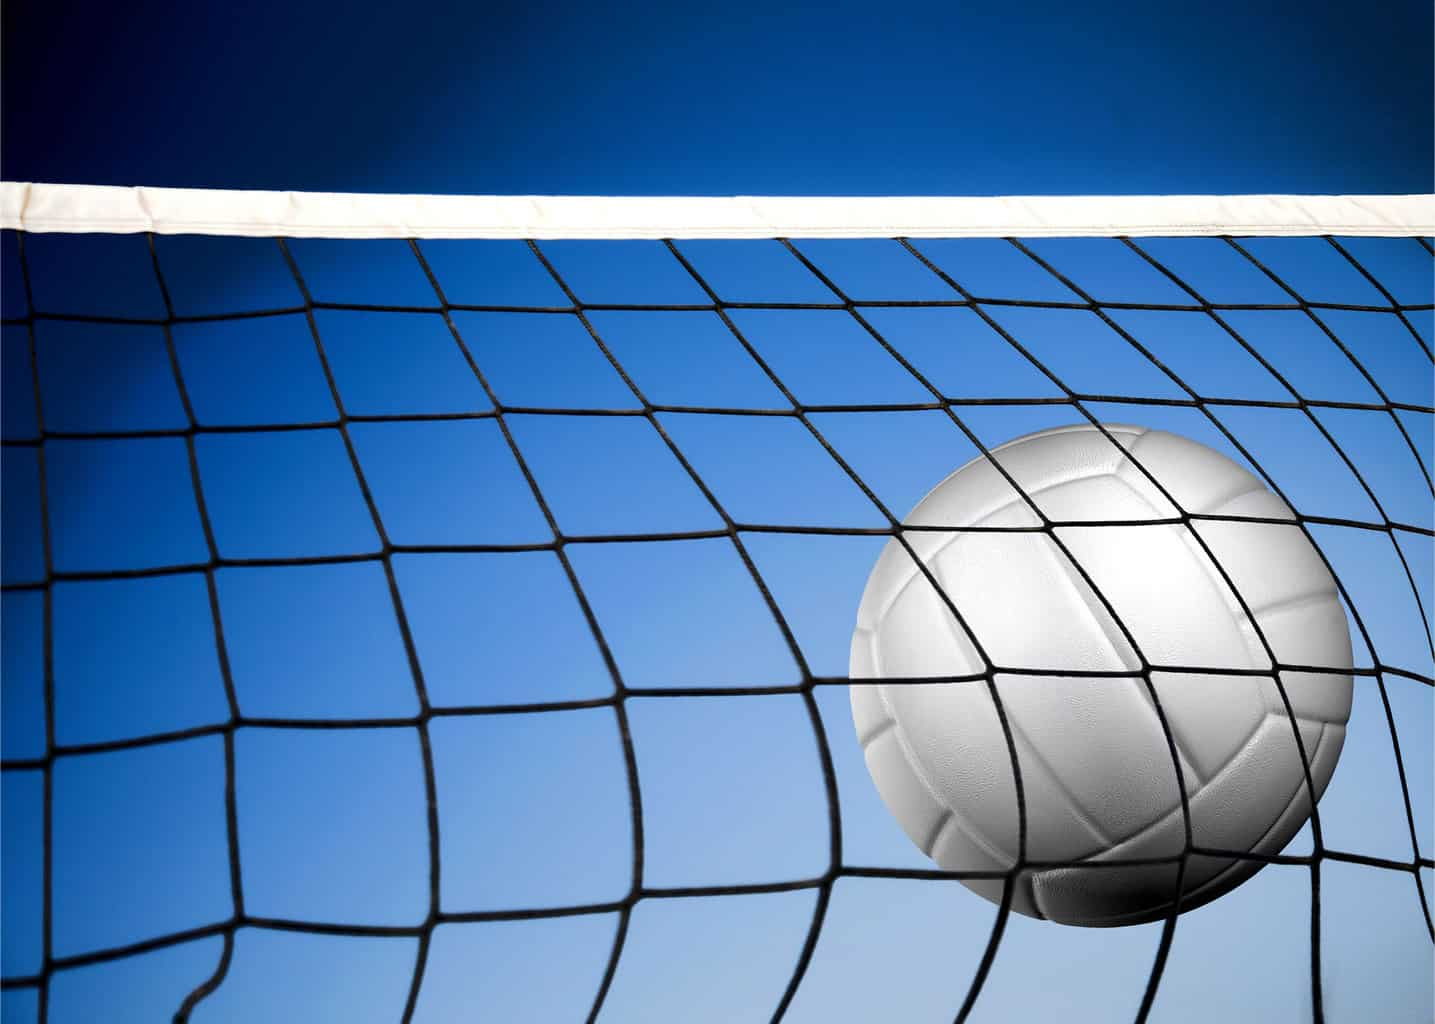 Girls Volleyball Tryouts Coming Up Culver City Crossroads